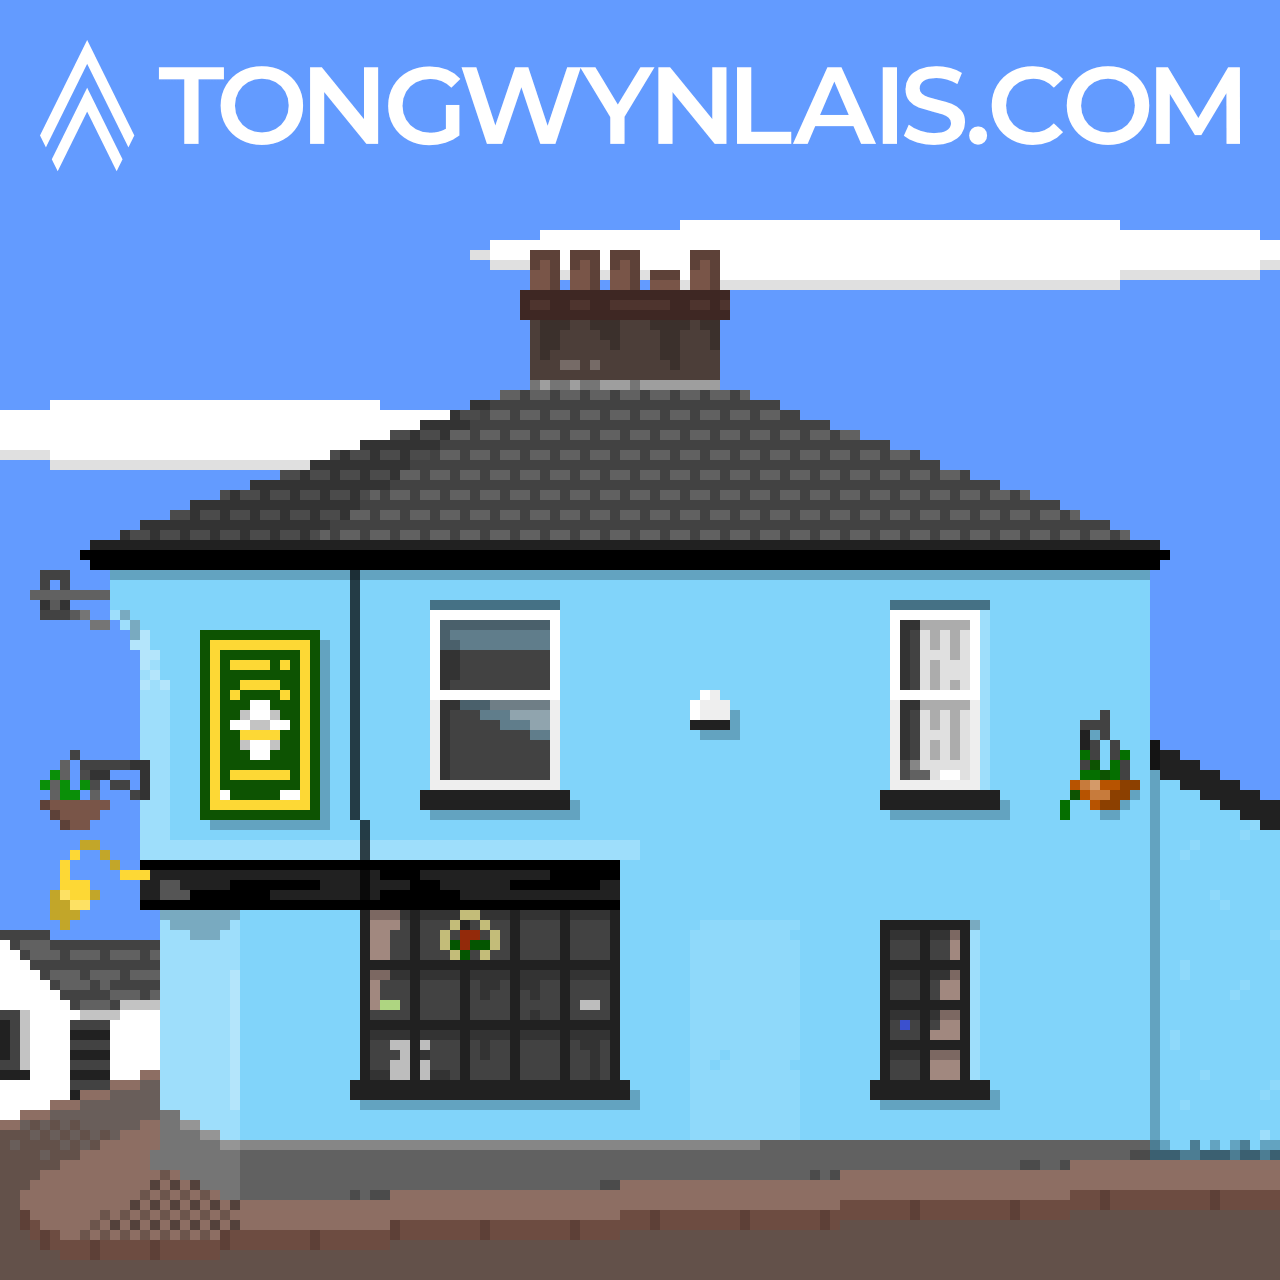 Pixel art illustration of Tongwynlais Rugby Club